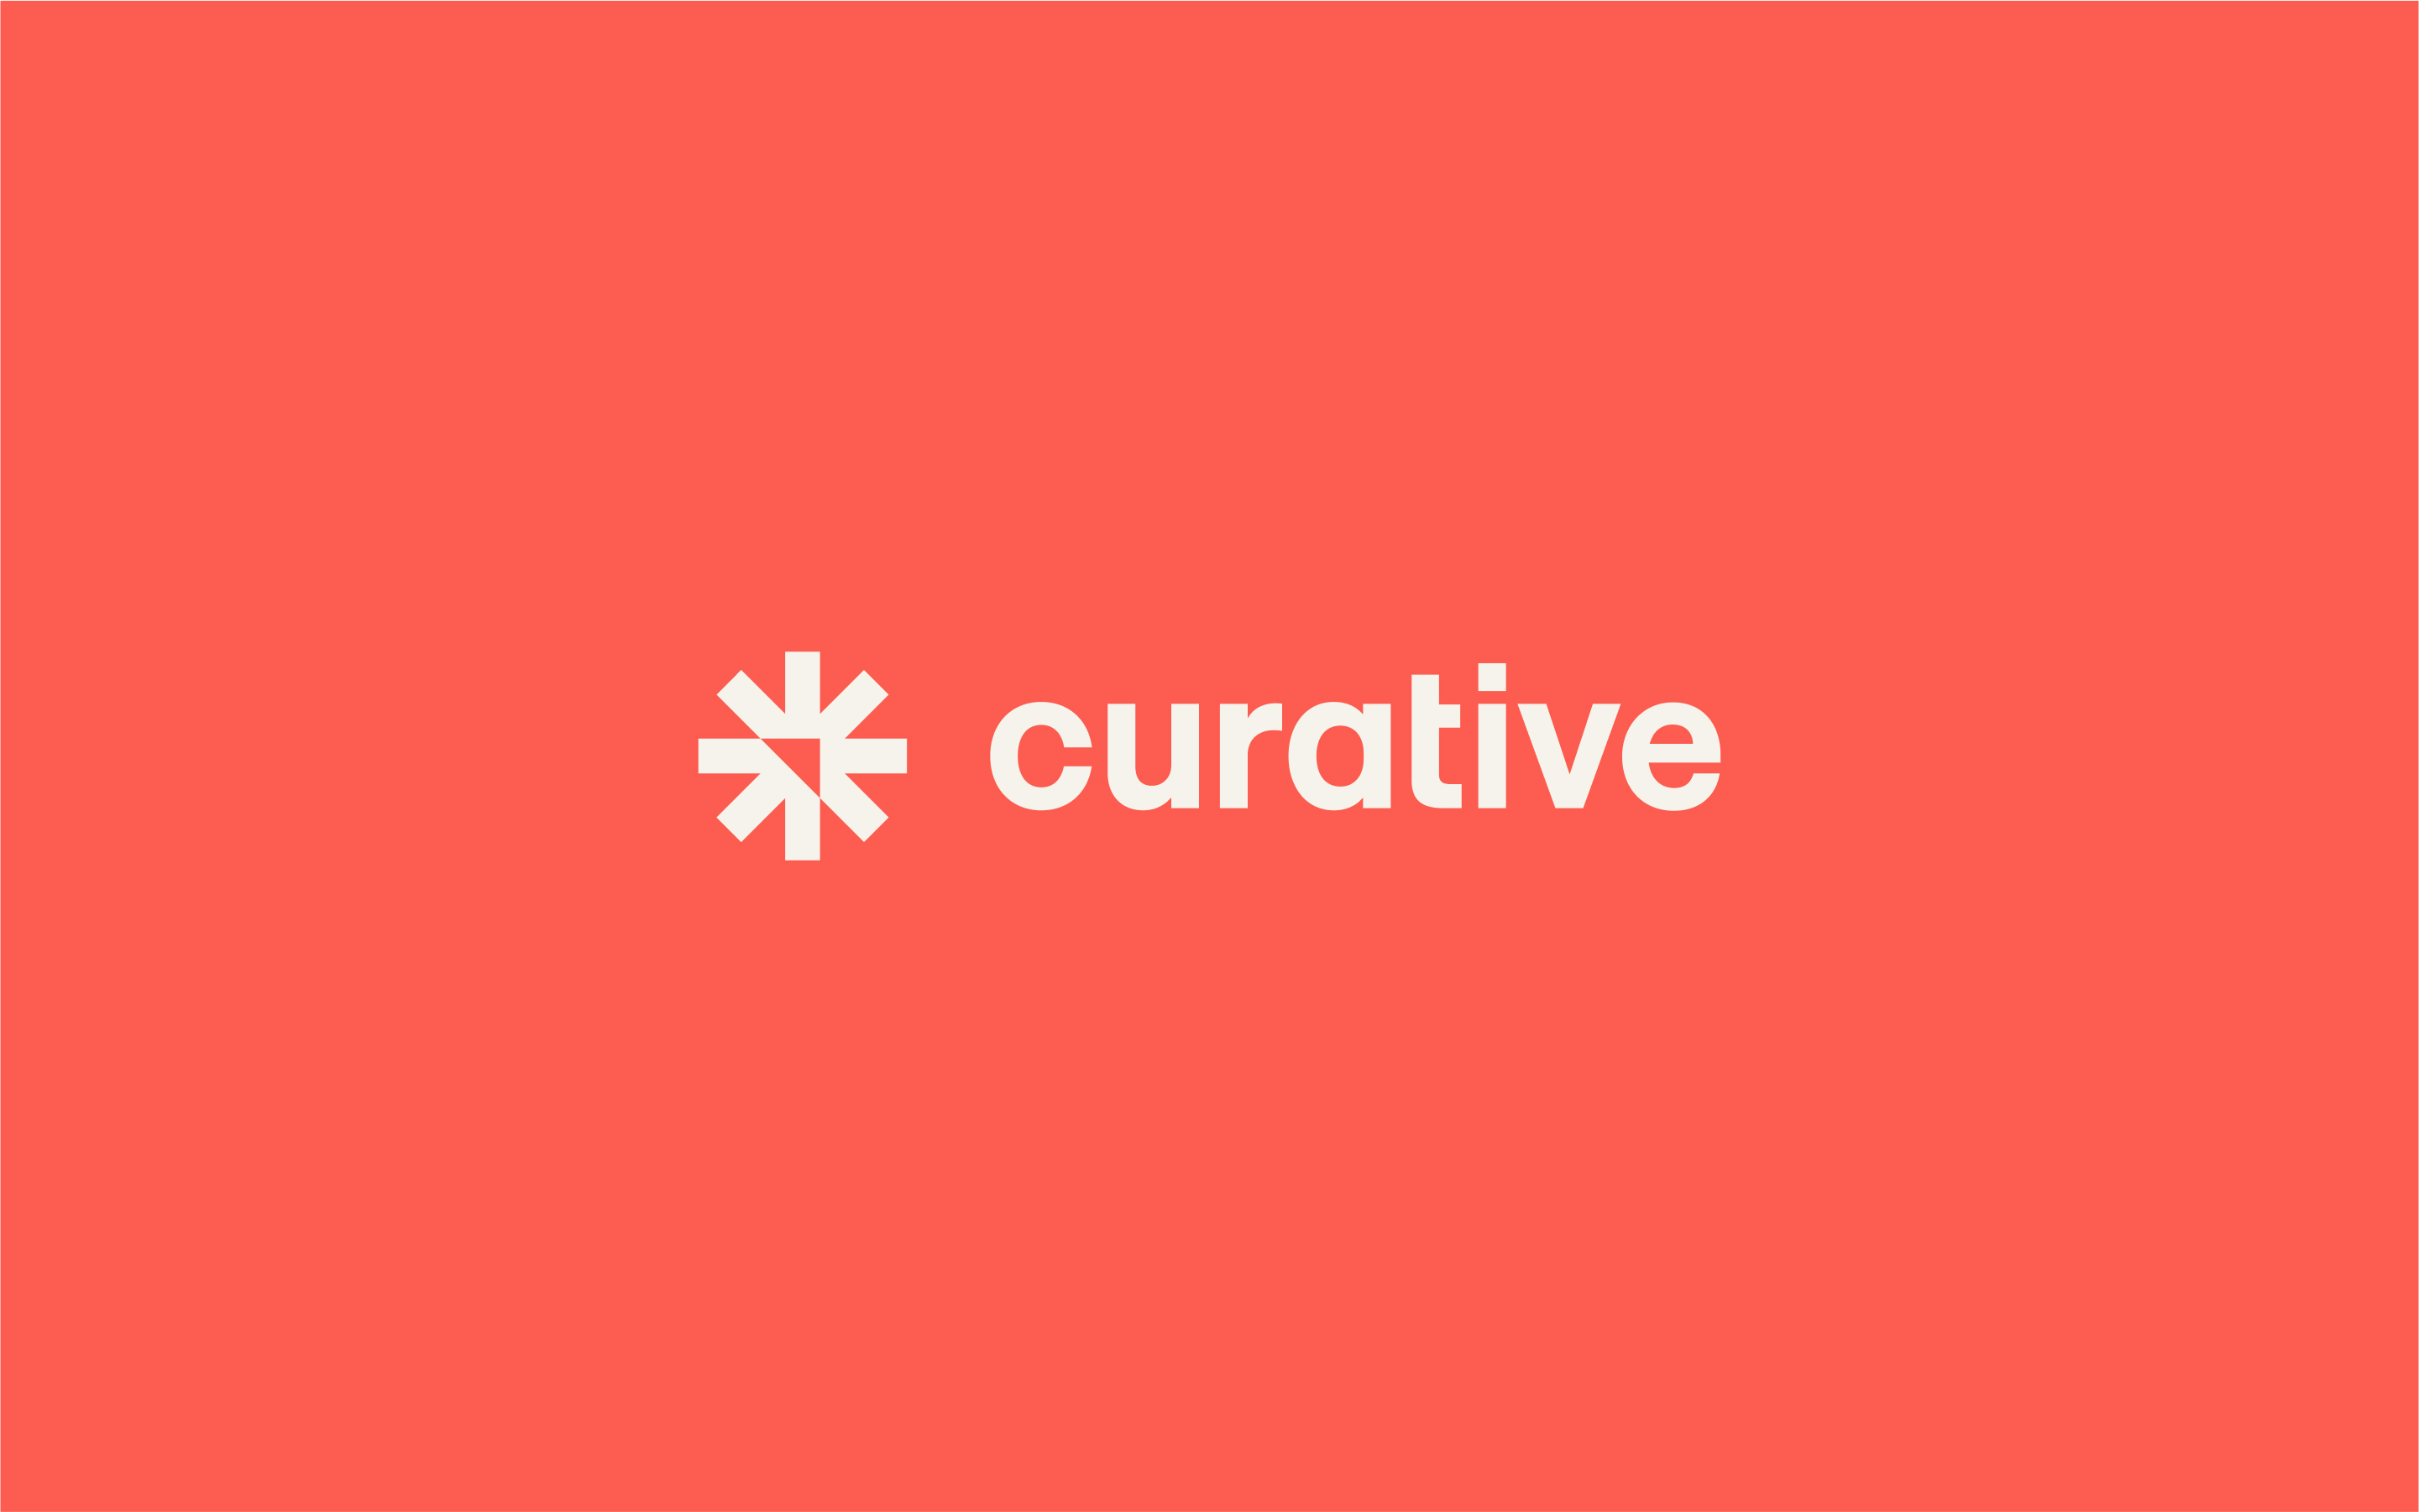 COVID-19 Startup Curative Rolls Out New Brand Identity by Landscape